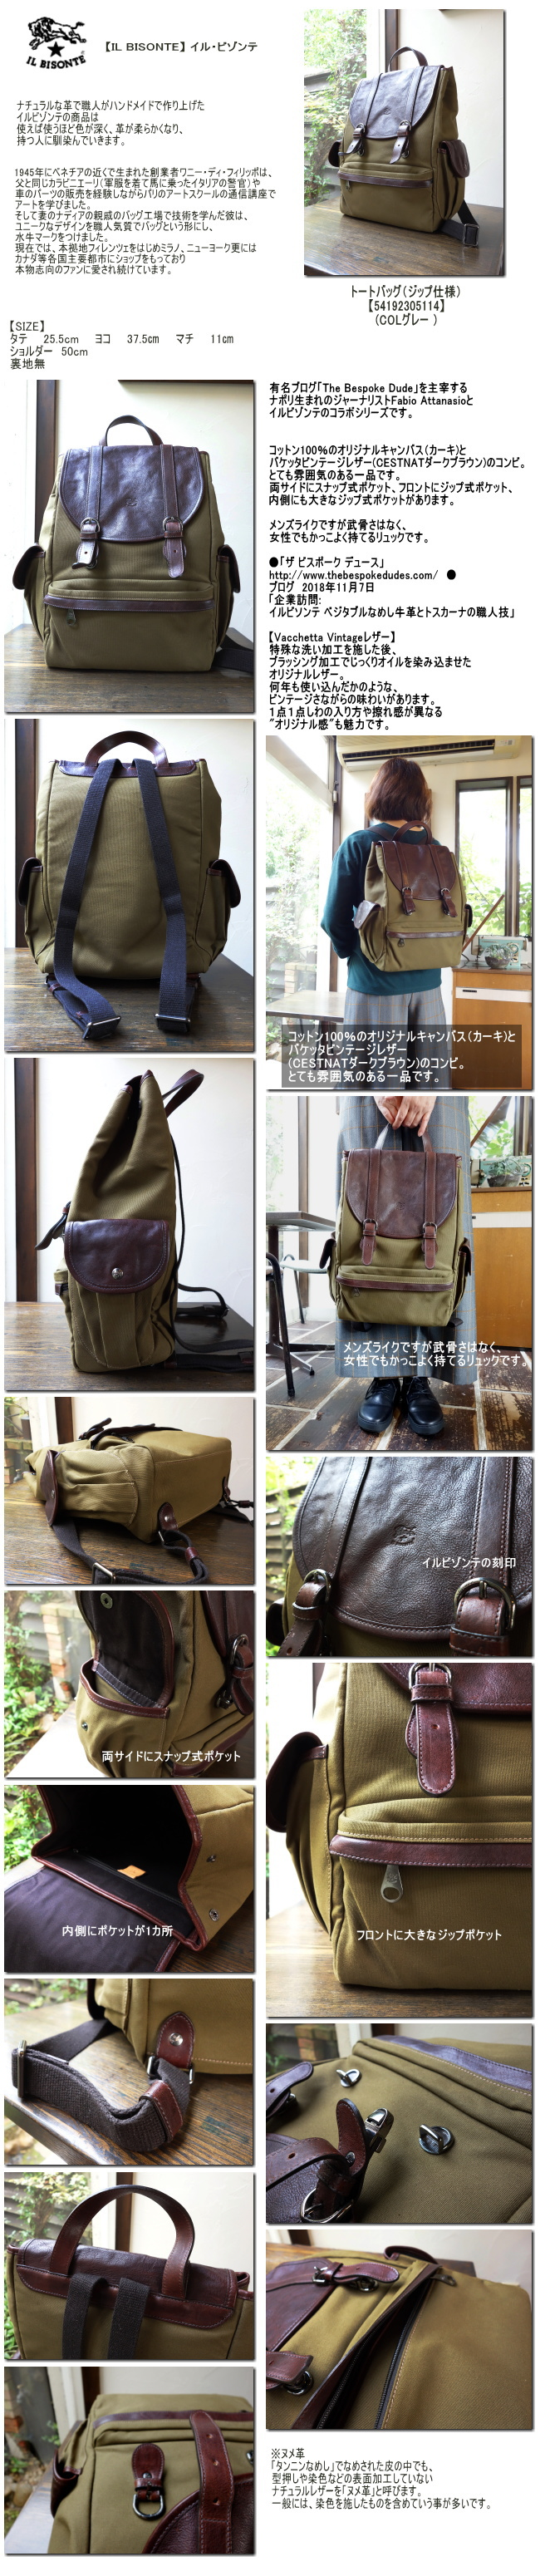 【IL BISONTE】 イルビゾンテ A Special Partnership キャンバス×バケッタビンテージレザー バックパック 【54192309123】( COL カーキ×CESTNATダークブラウン)